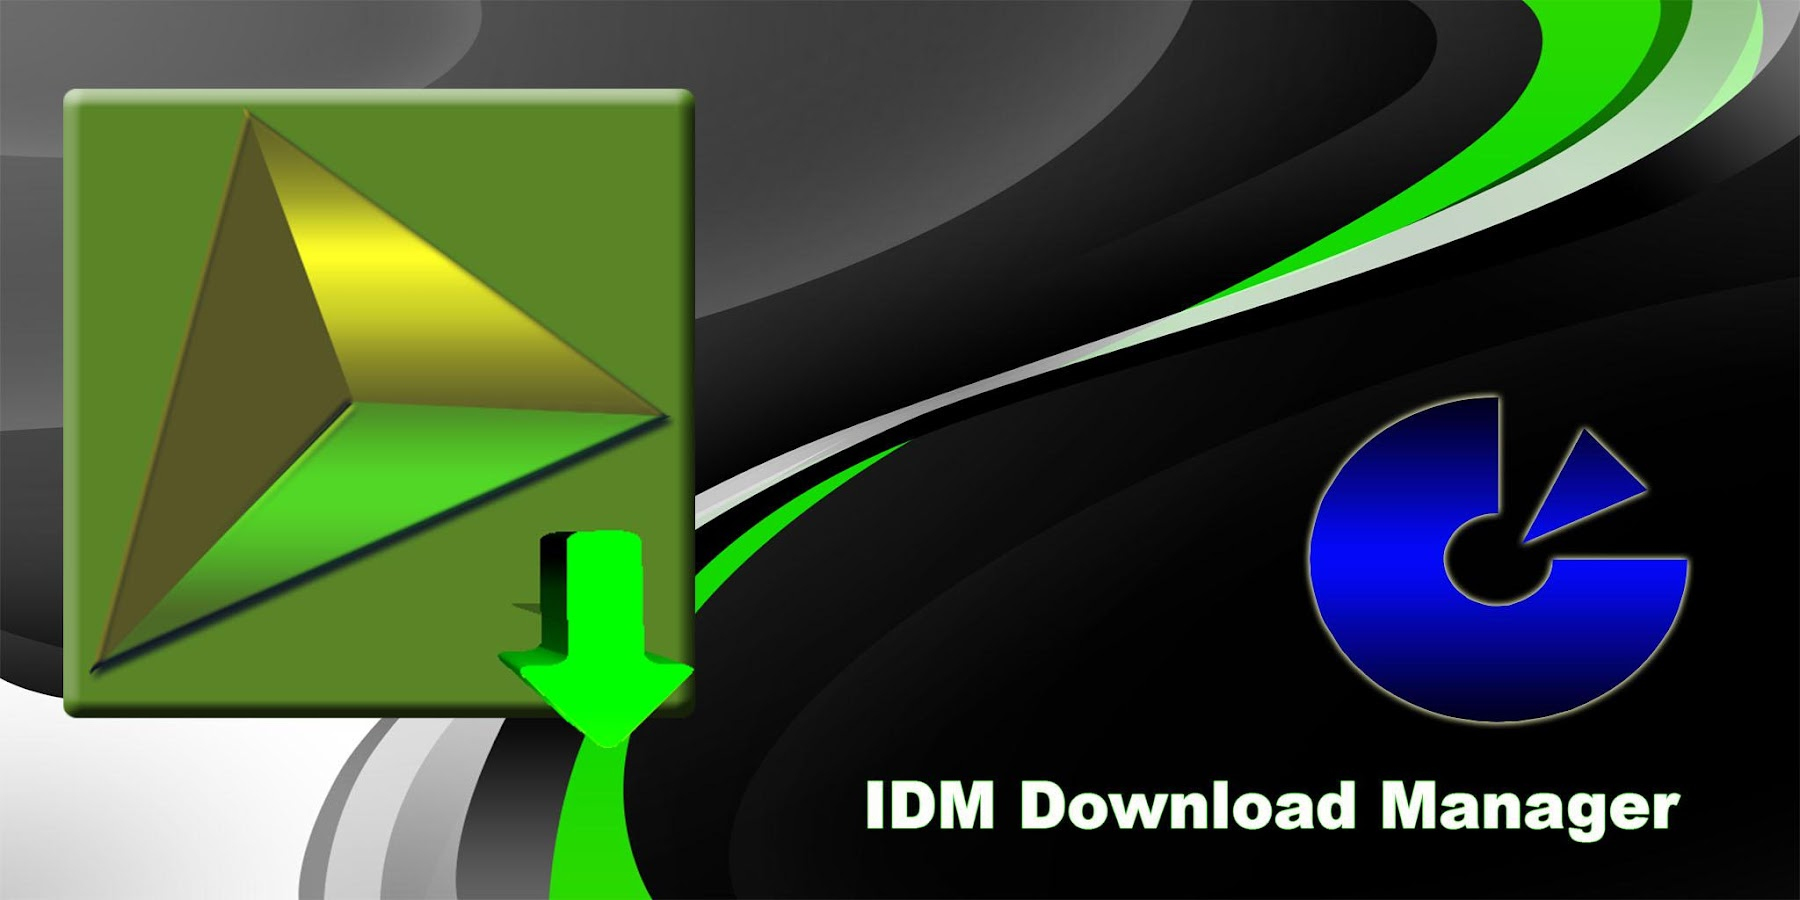 IDM Fastest download manager Apk Mod for Android